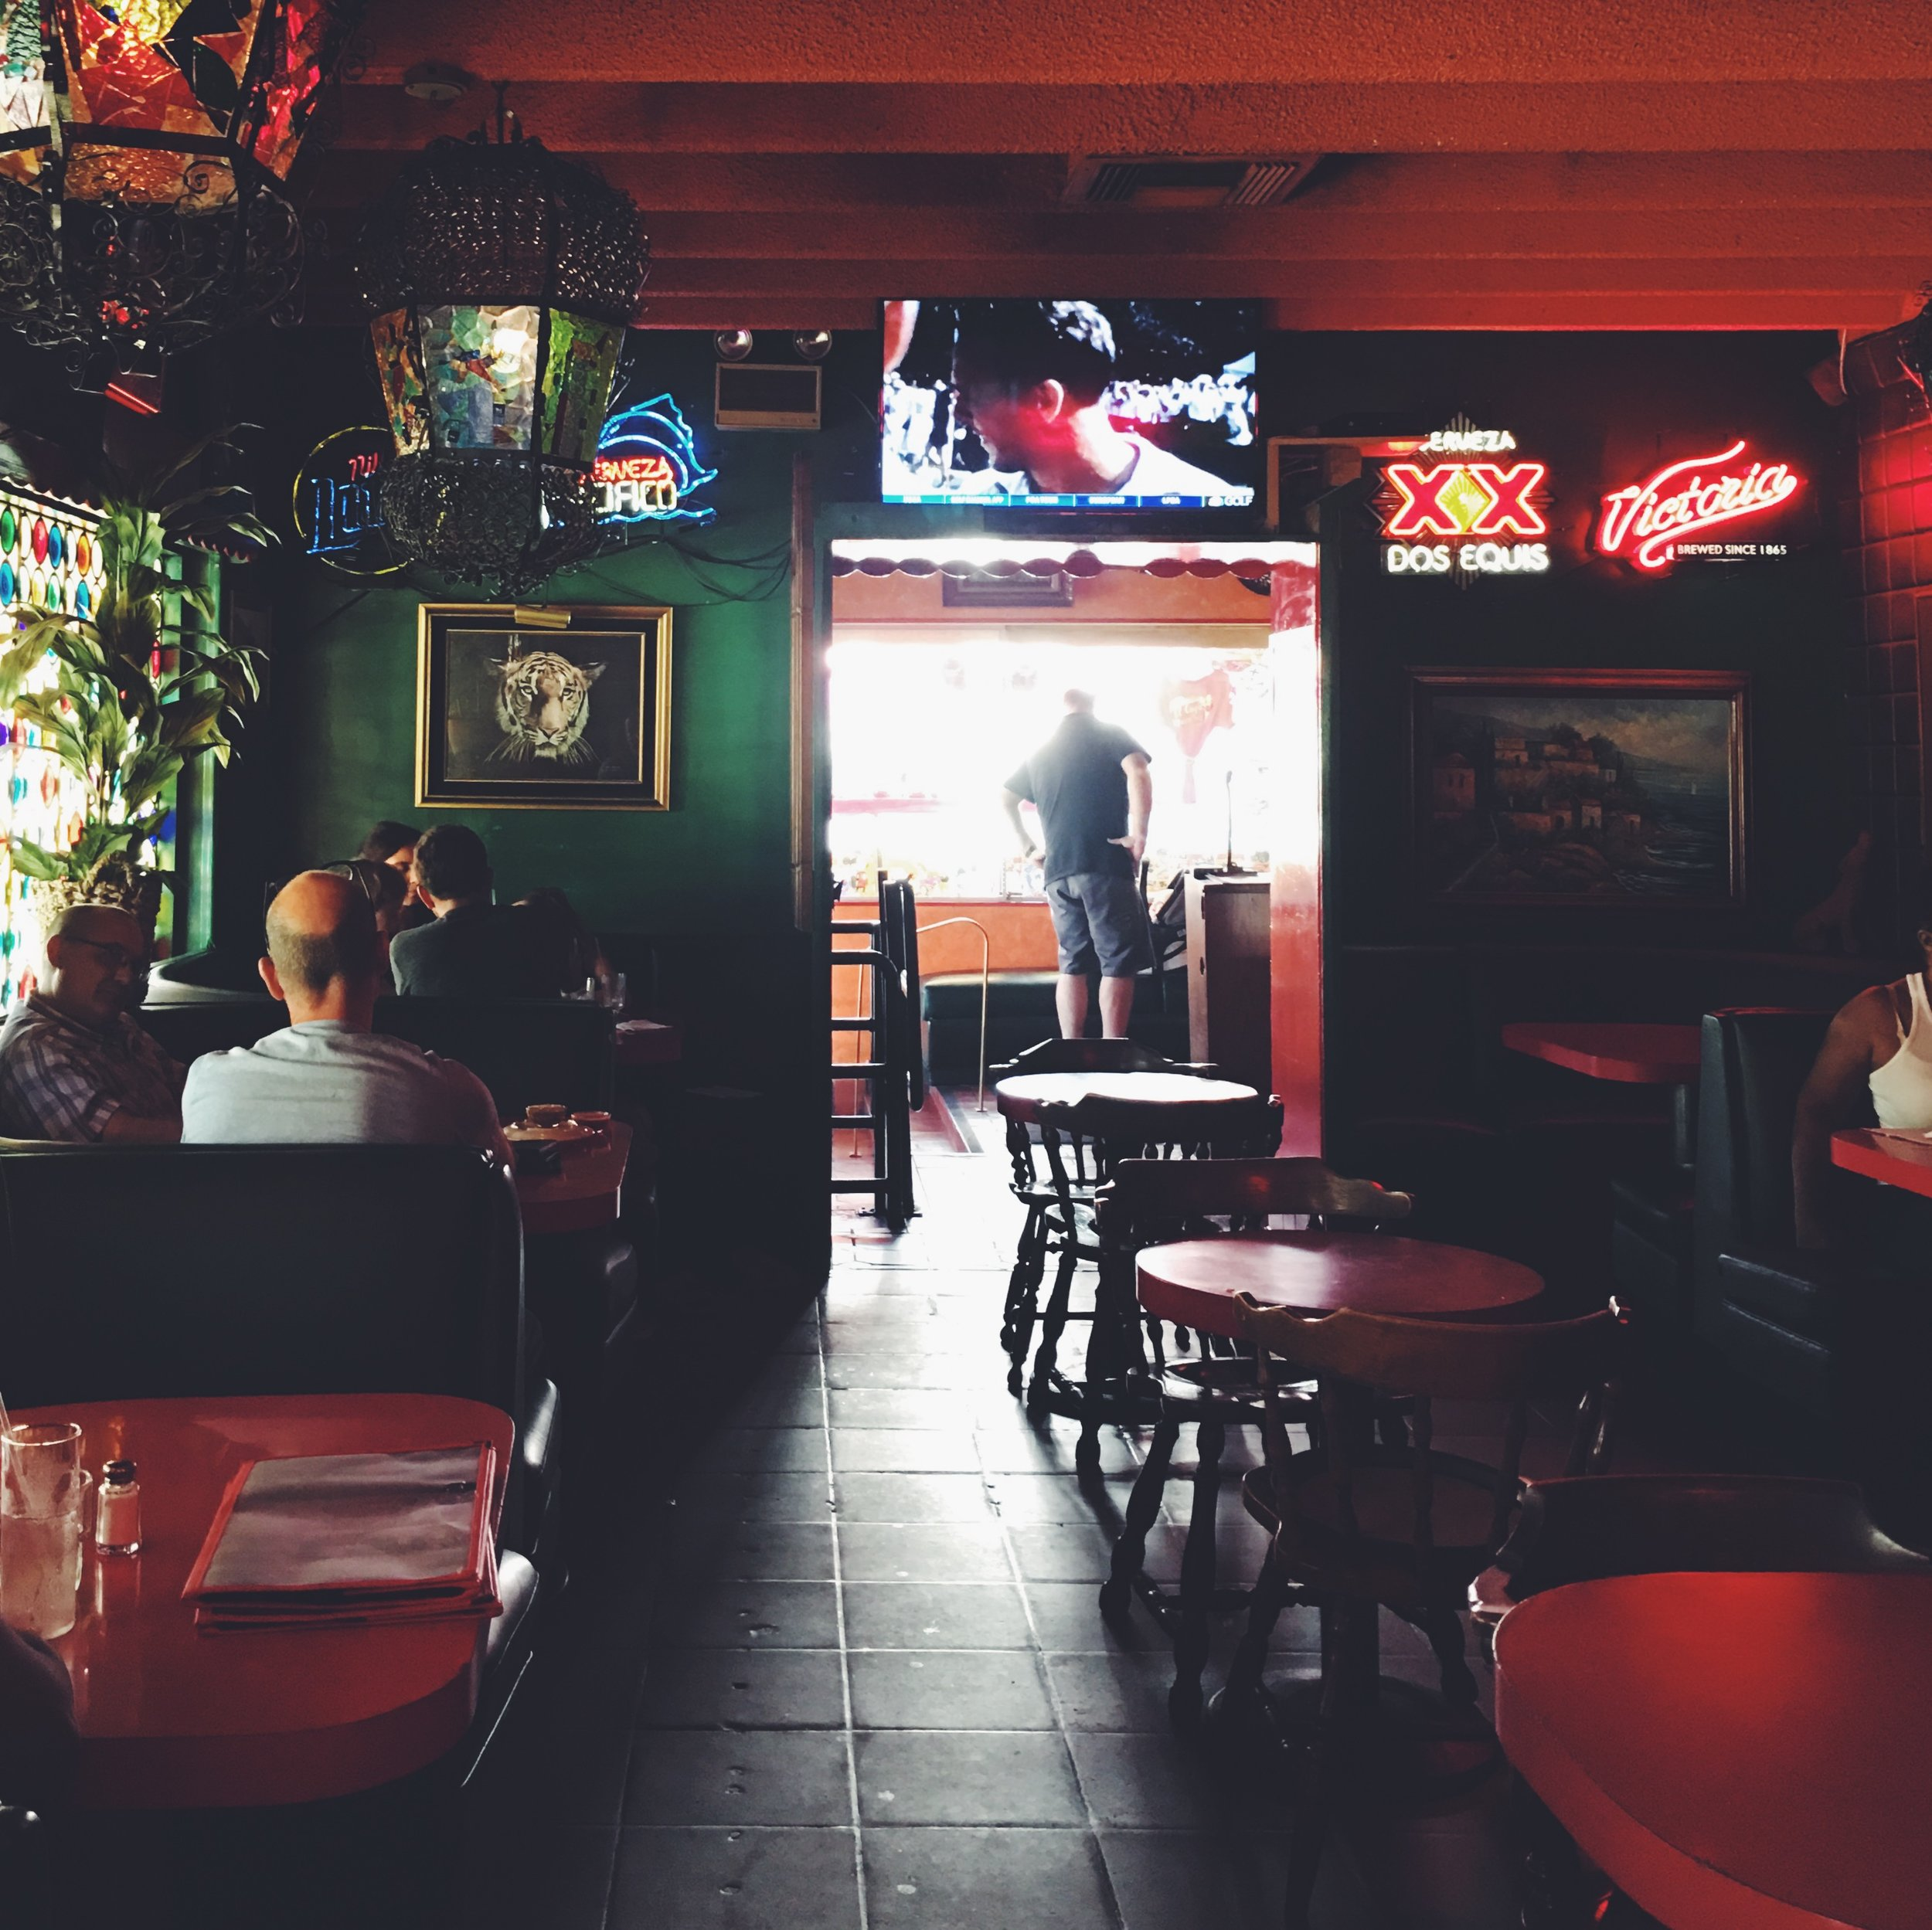 ivv_petrolette_kel_mcintosh_Interior_El_Coyote_Mexican_Restaurant.jpg